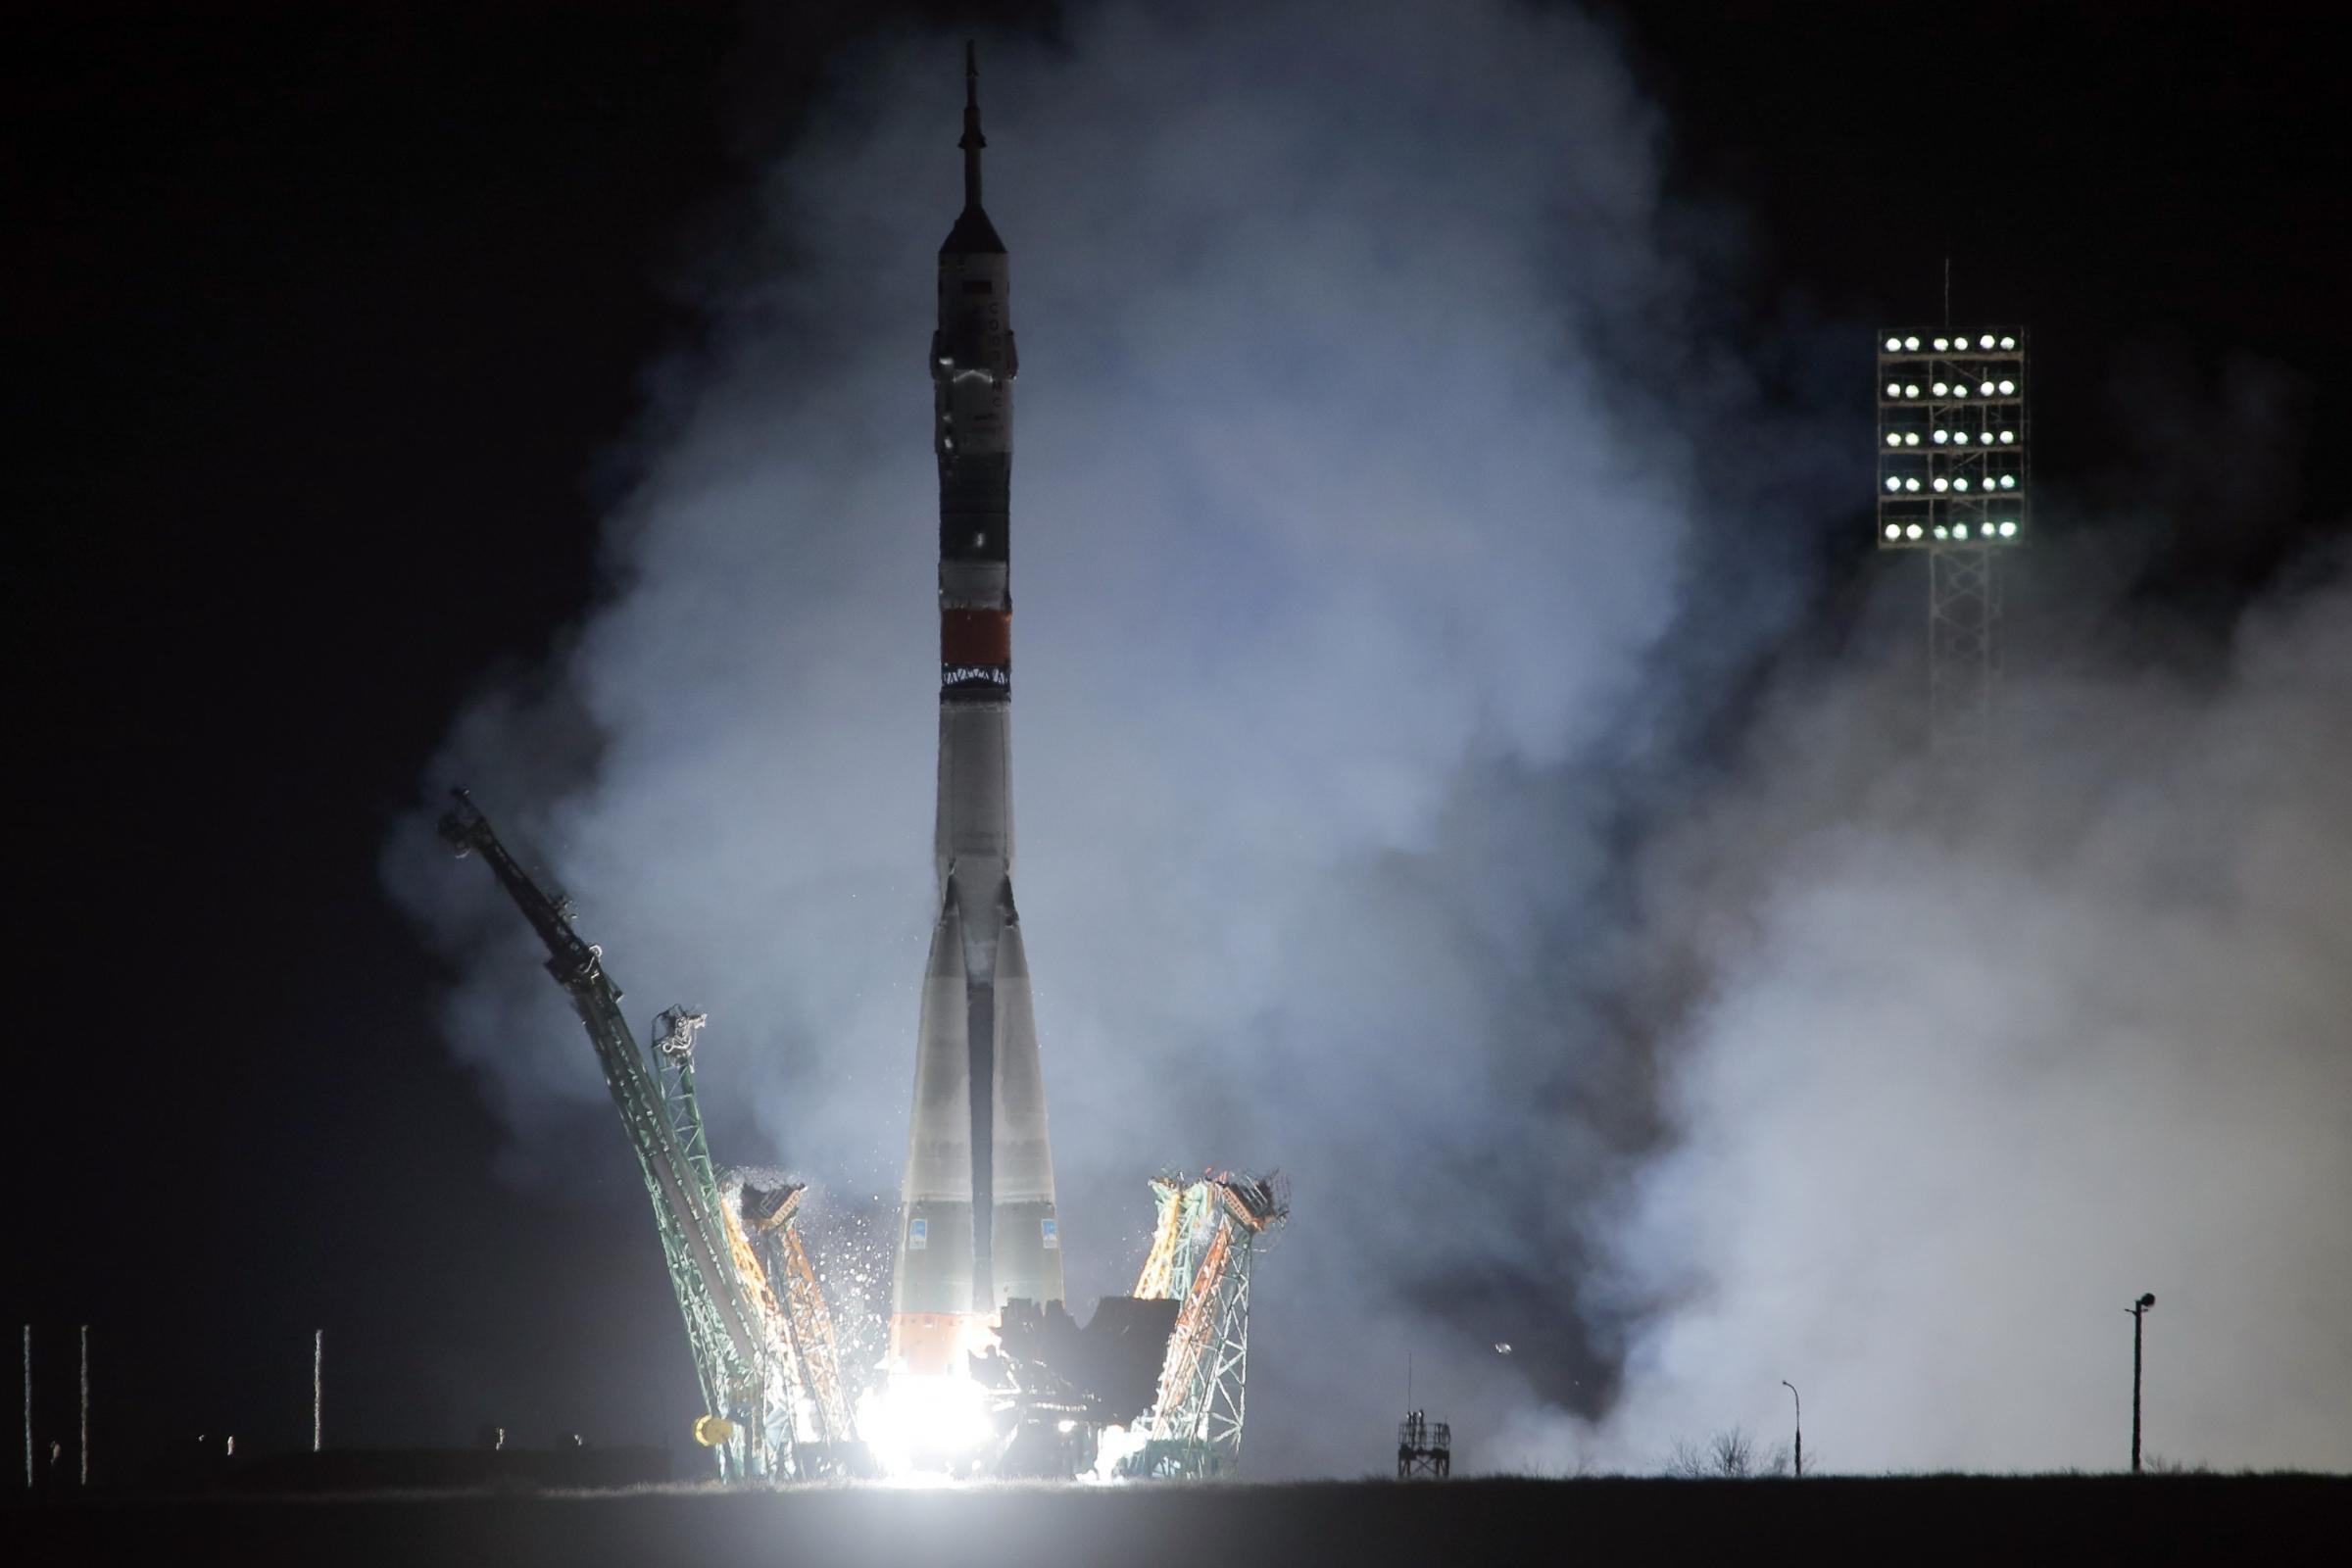 The Soyuz-FG rocket booster with Soyuz MS-12 space ship blasts off